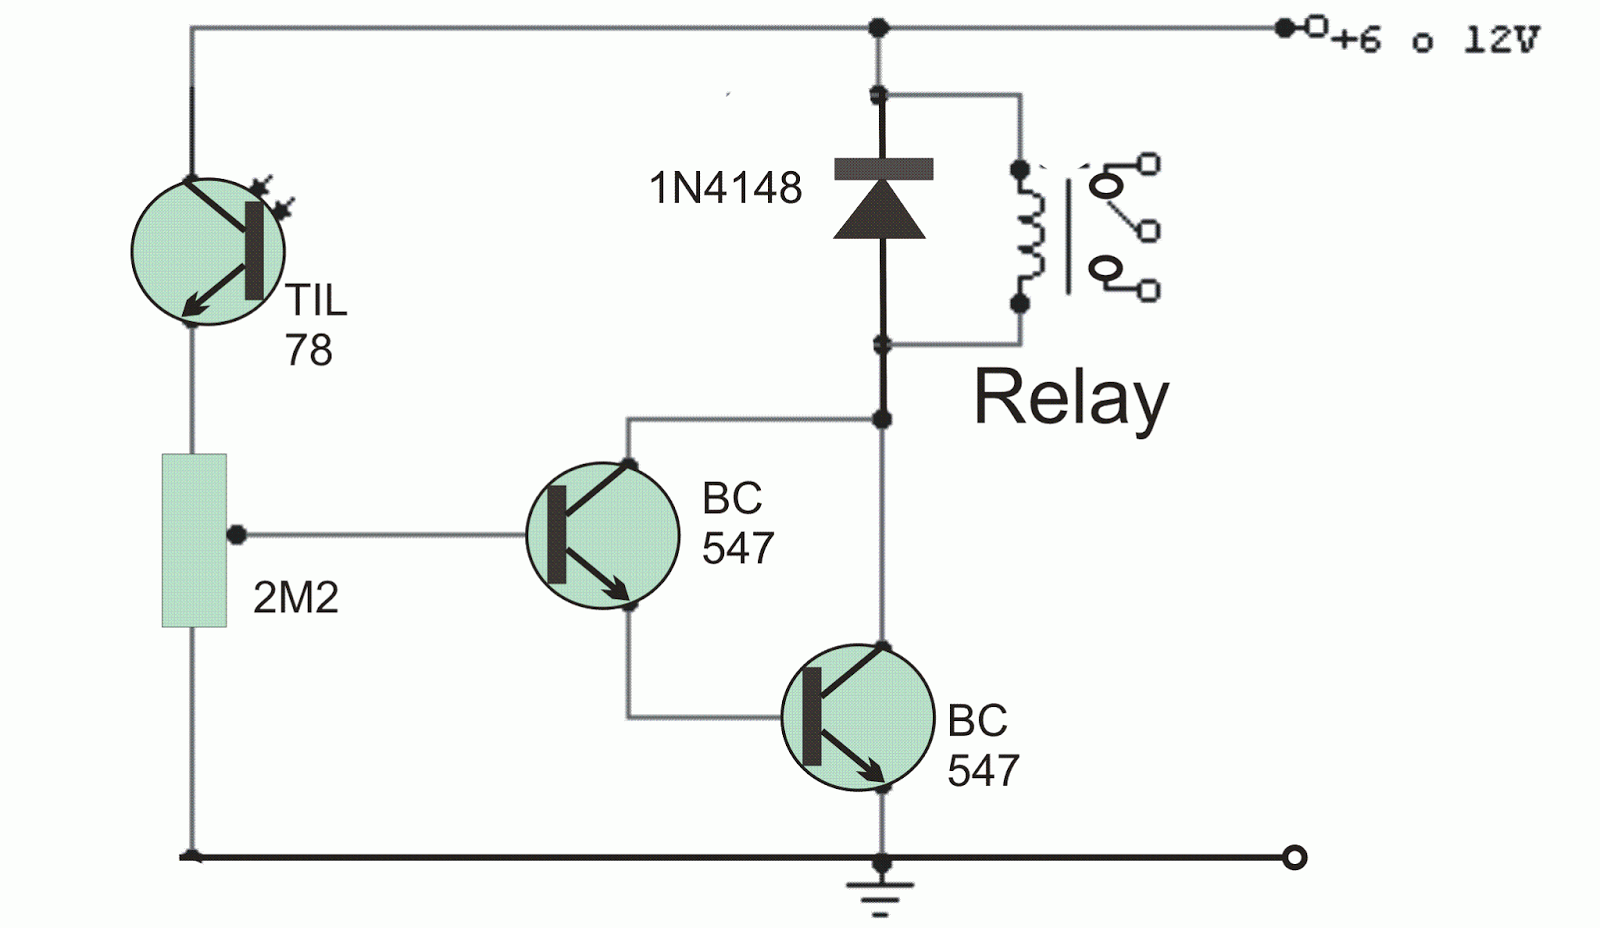 Light Operated Relay Circuit - Relay Circuit With Transistor